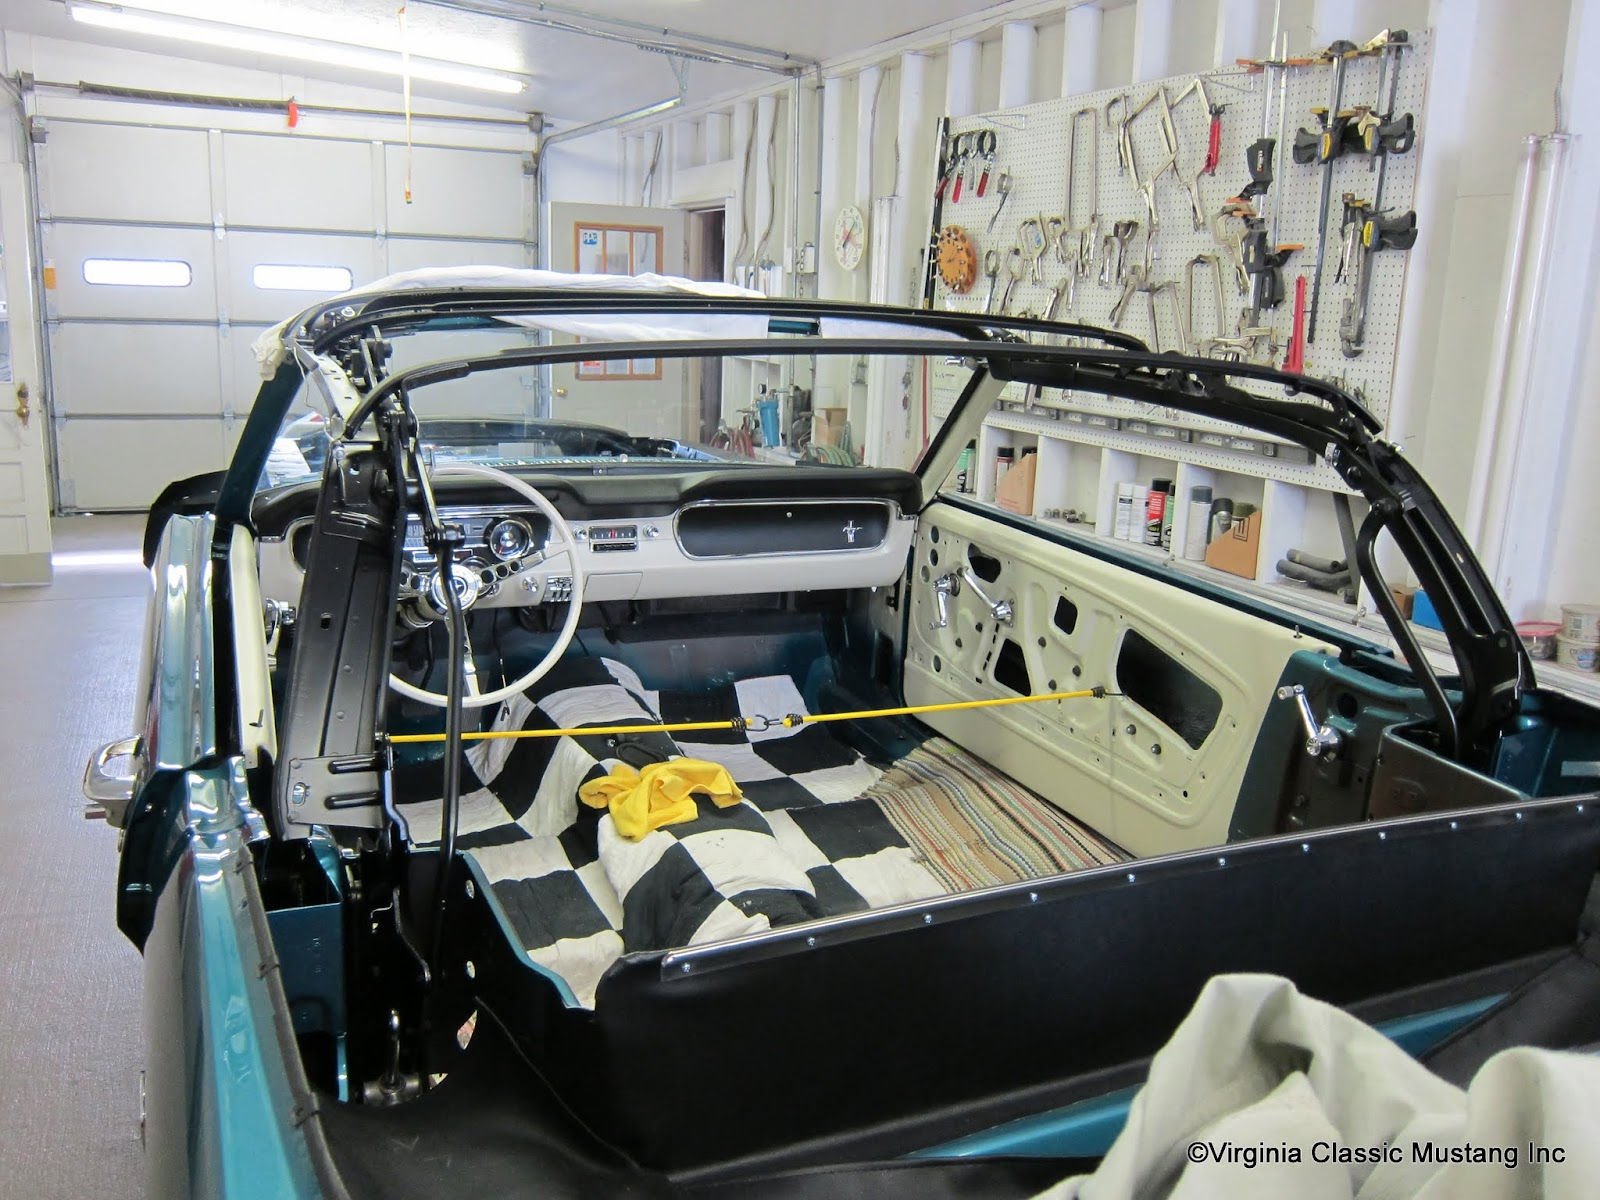 Virginia classic mustang blog just the details1965 mustang the mustang convertible top frame is detailed and in place virginiaclassicmustang publicscrutiny Choice Image